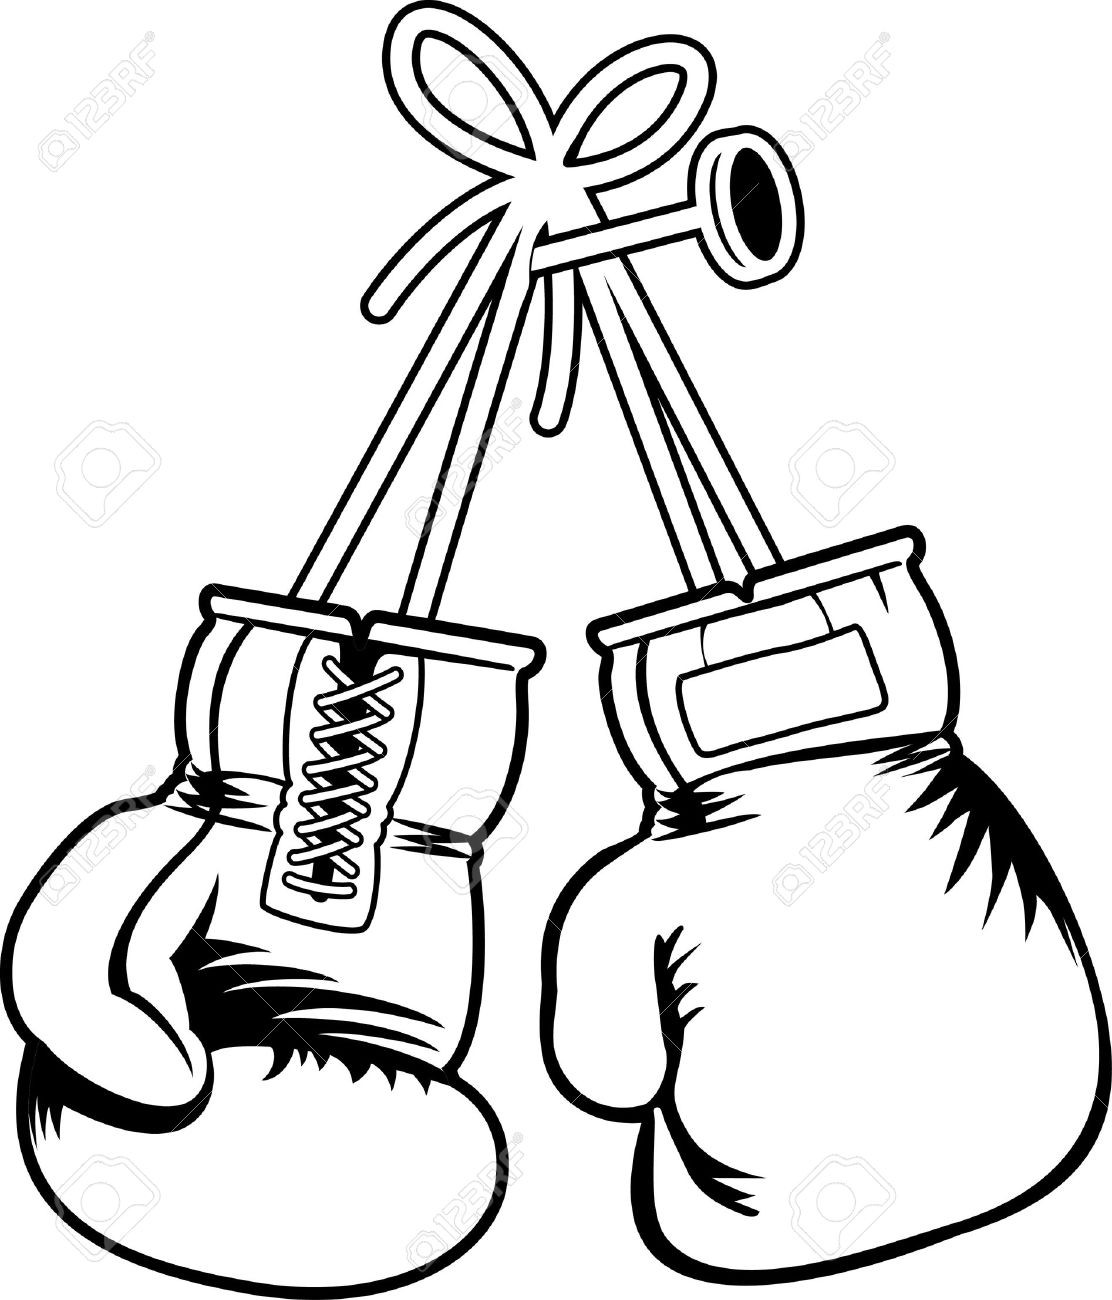 boxing gloves coloring pages coloring page coloring pages boxing gloves adult boxing coloring pages gloves